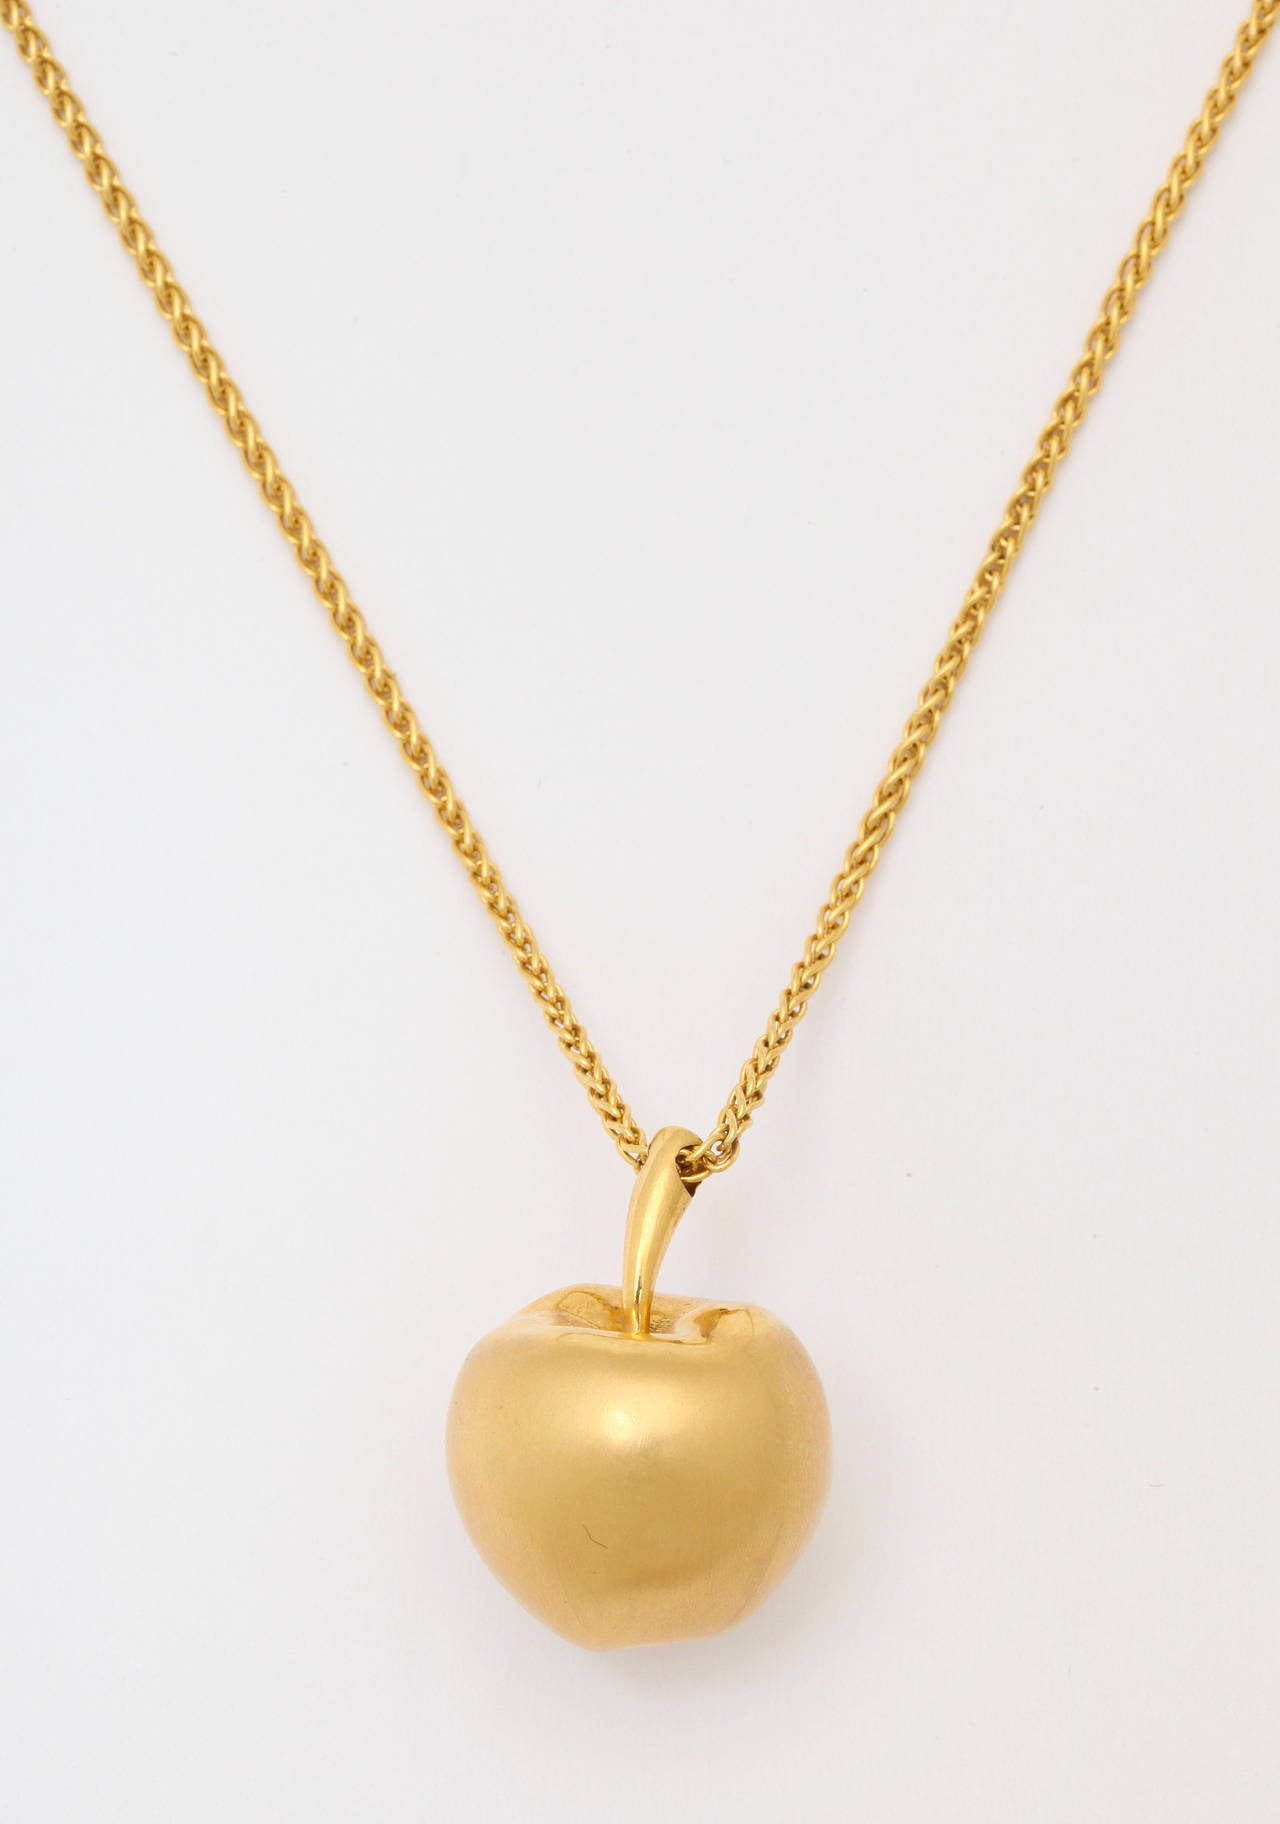 Long gold chain with apple pendant at 1stdibs the beautiful matte solid gold apple pendant is suspended from a 295 inch woven mozeypictures Choice Image